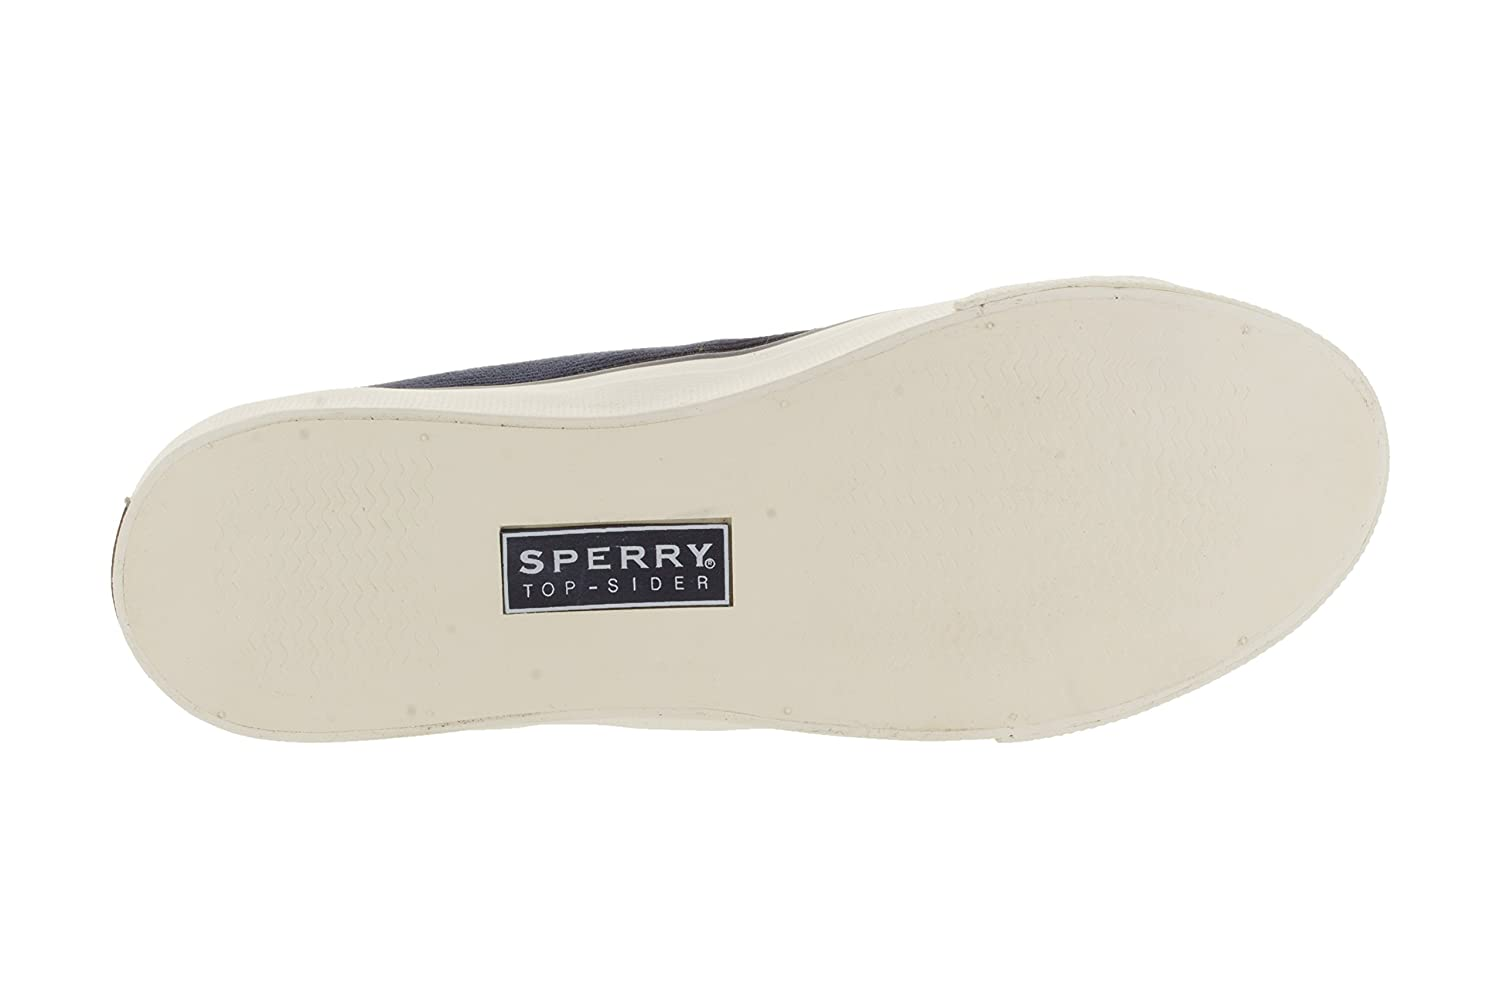 SPERRY Womens Top-Sider Seacoast Navy Casual Shoe